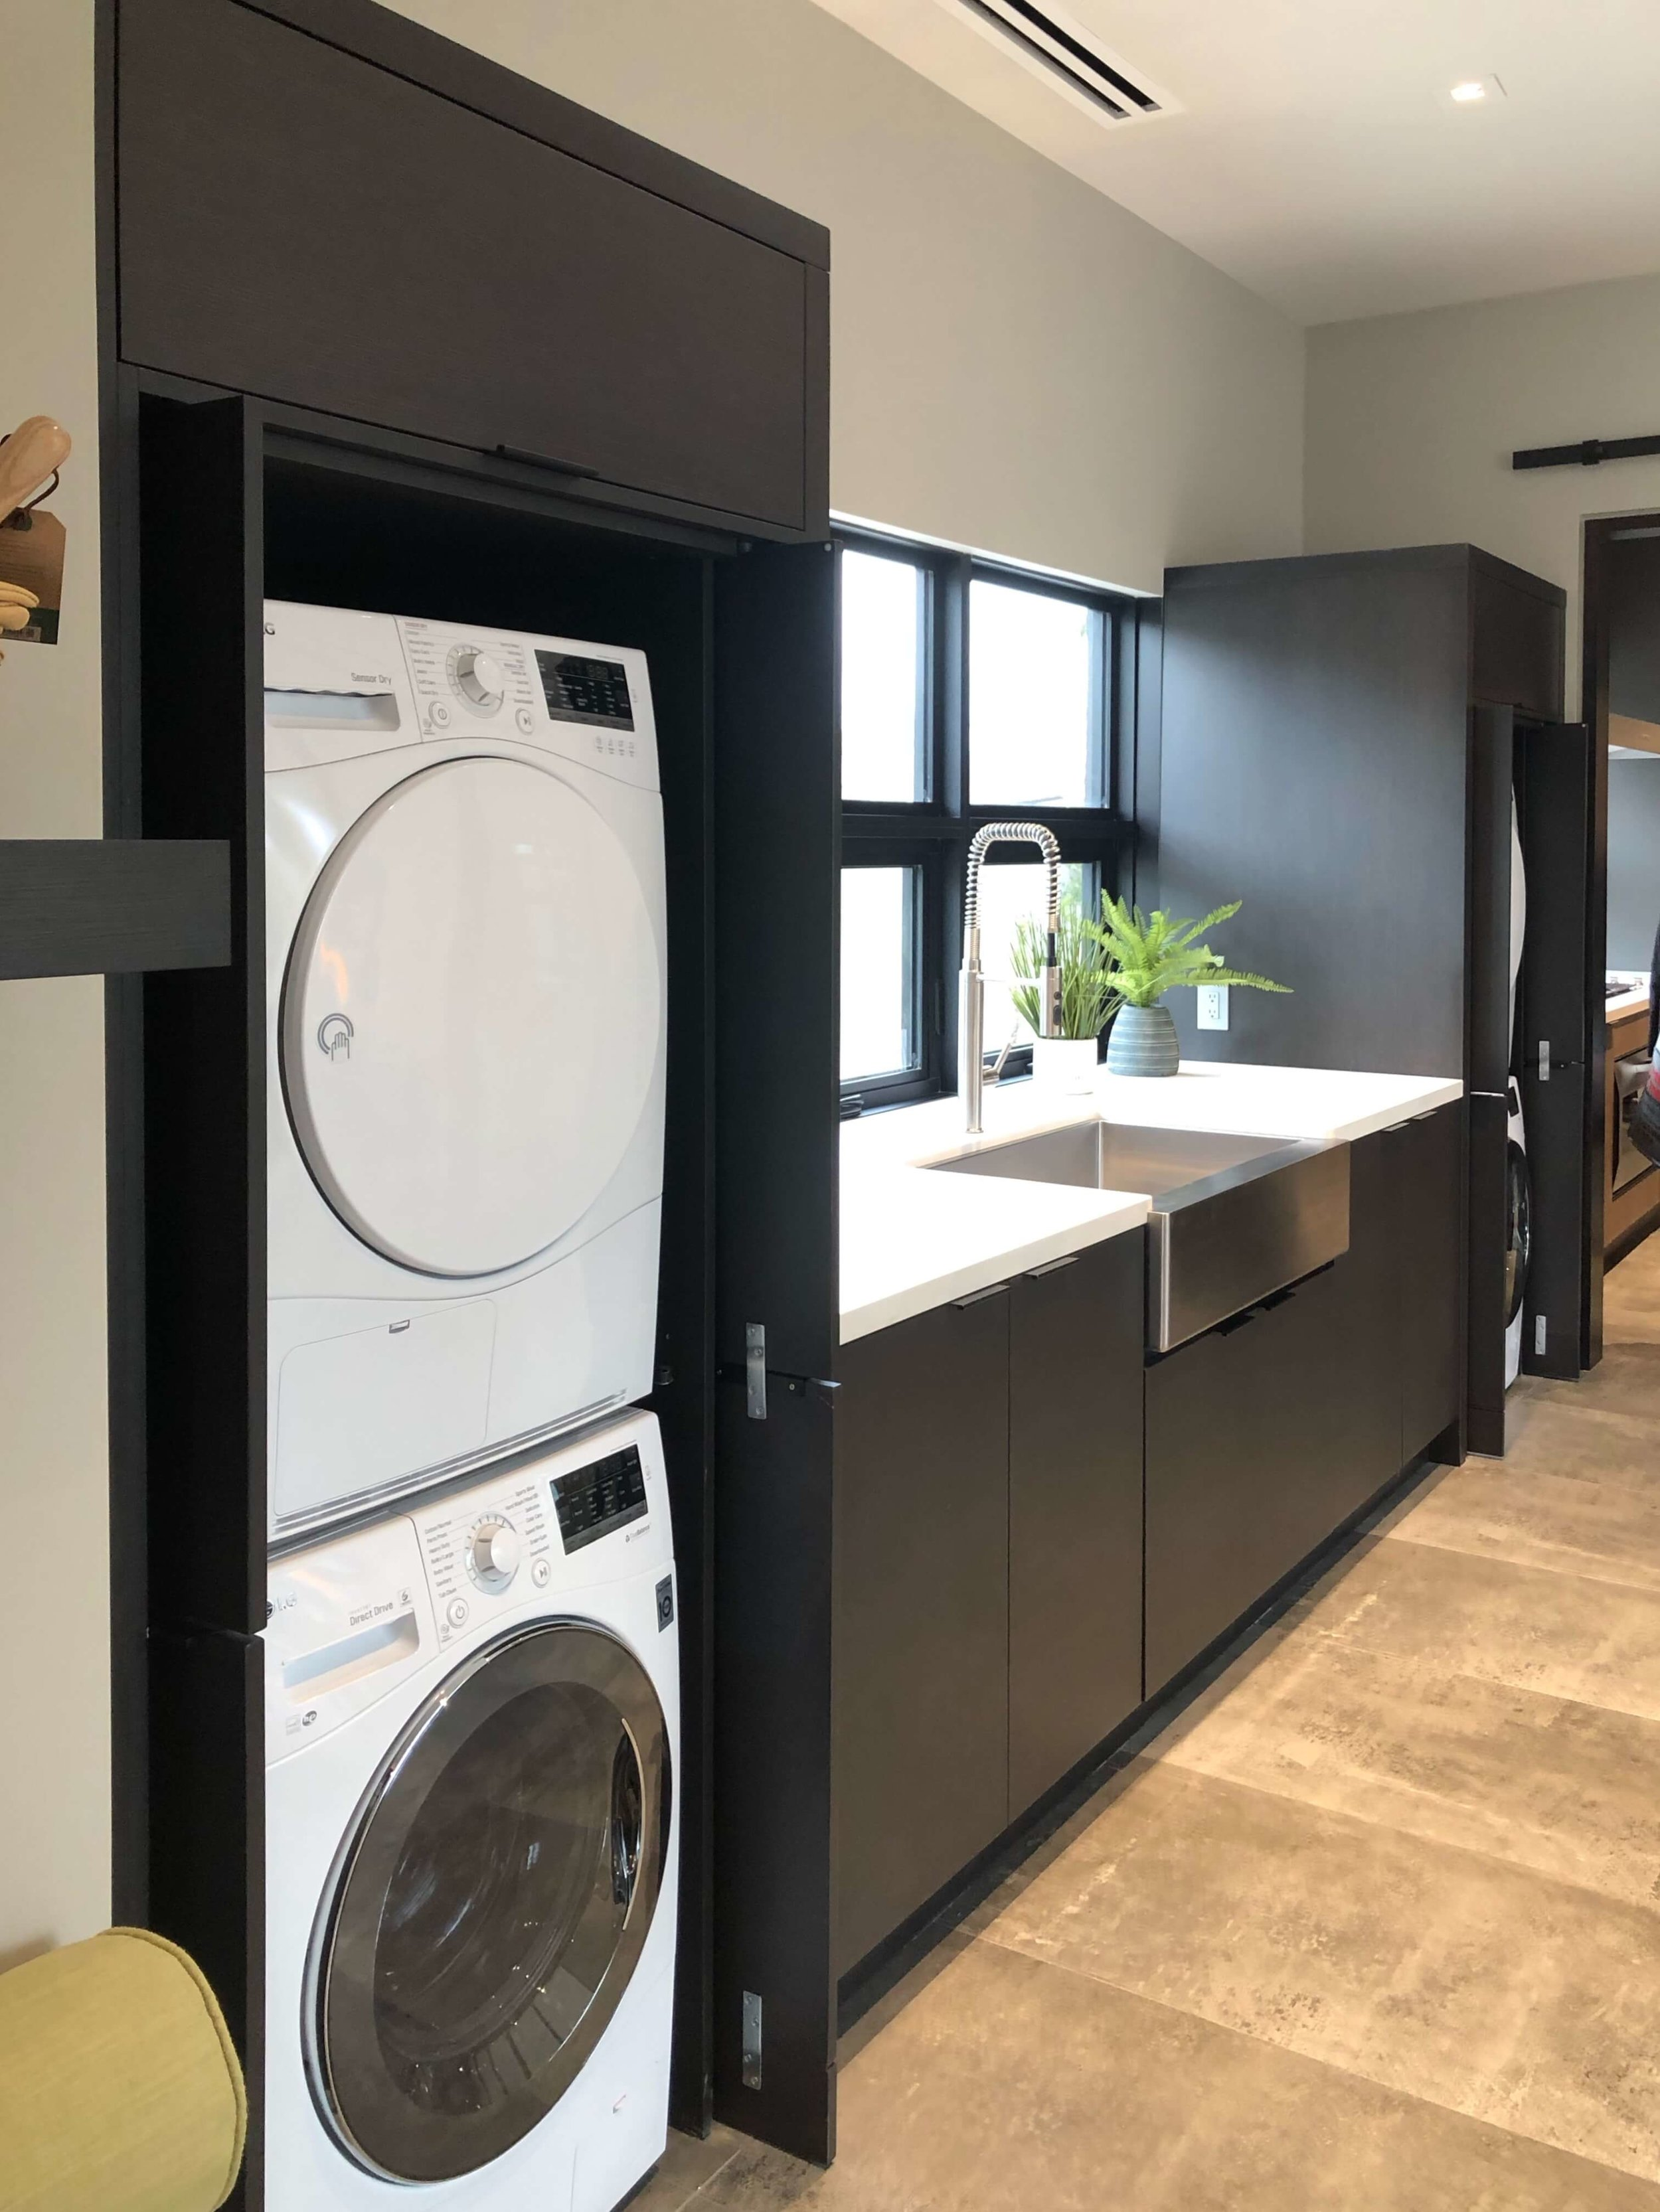 Laundry room with two sets of stacked washer / dryers and a large stainless farmhouse sink in The New American Remodel 2019. #laundryroom #farmhousesink #hometour #contemporaryhome